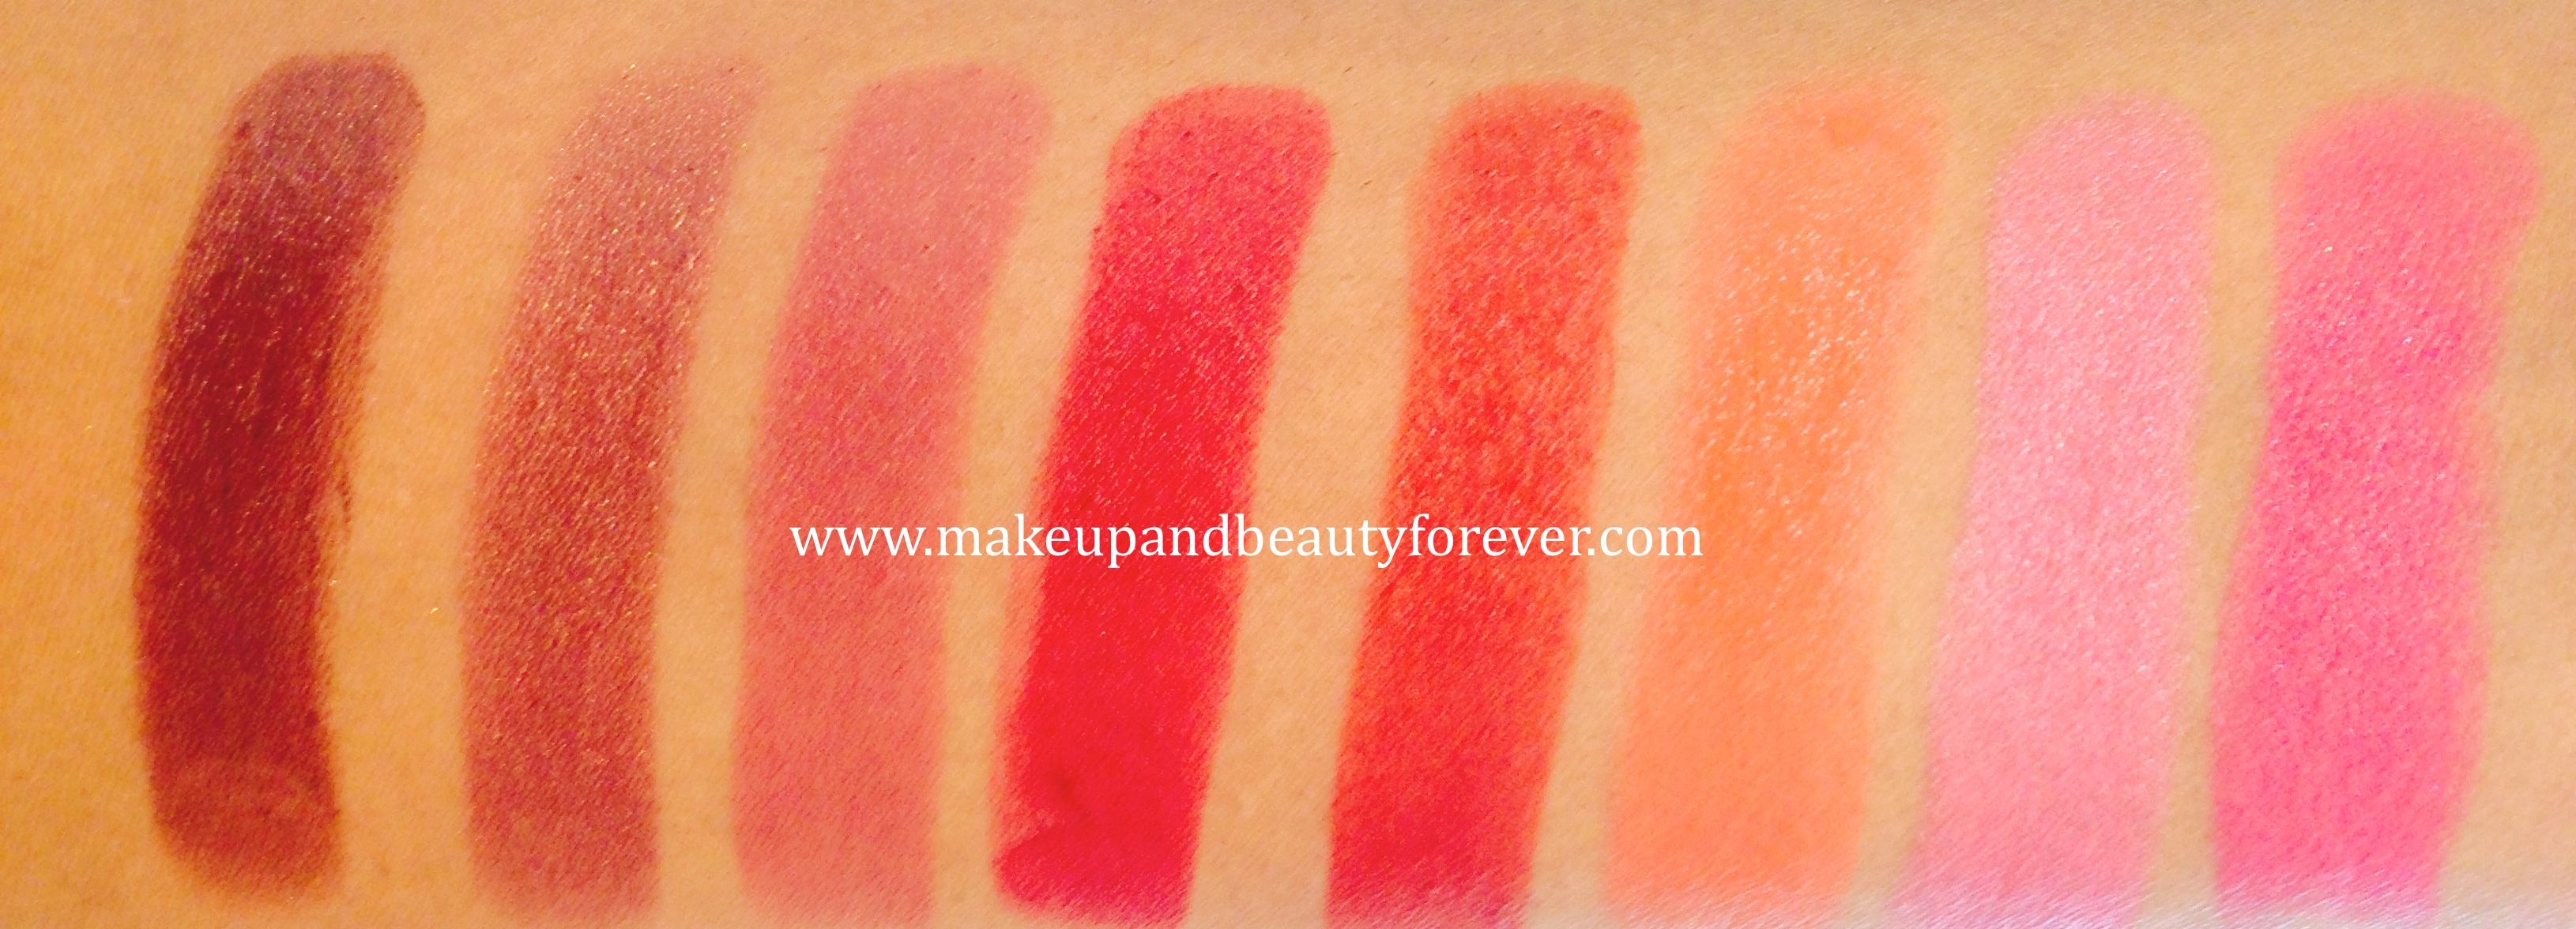 All Lakme Absolute Matte Lip Colours Review, Swatches ...